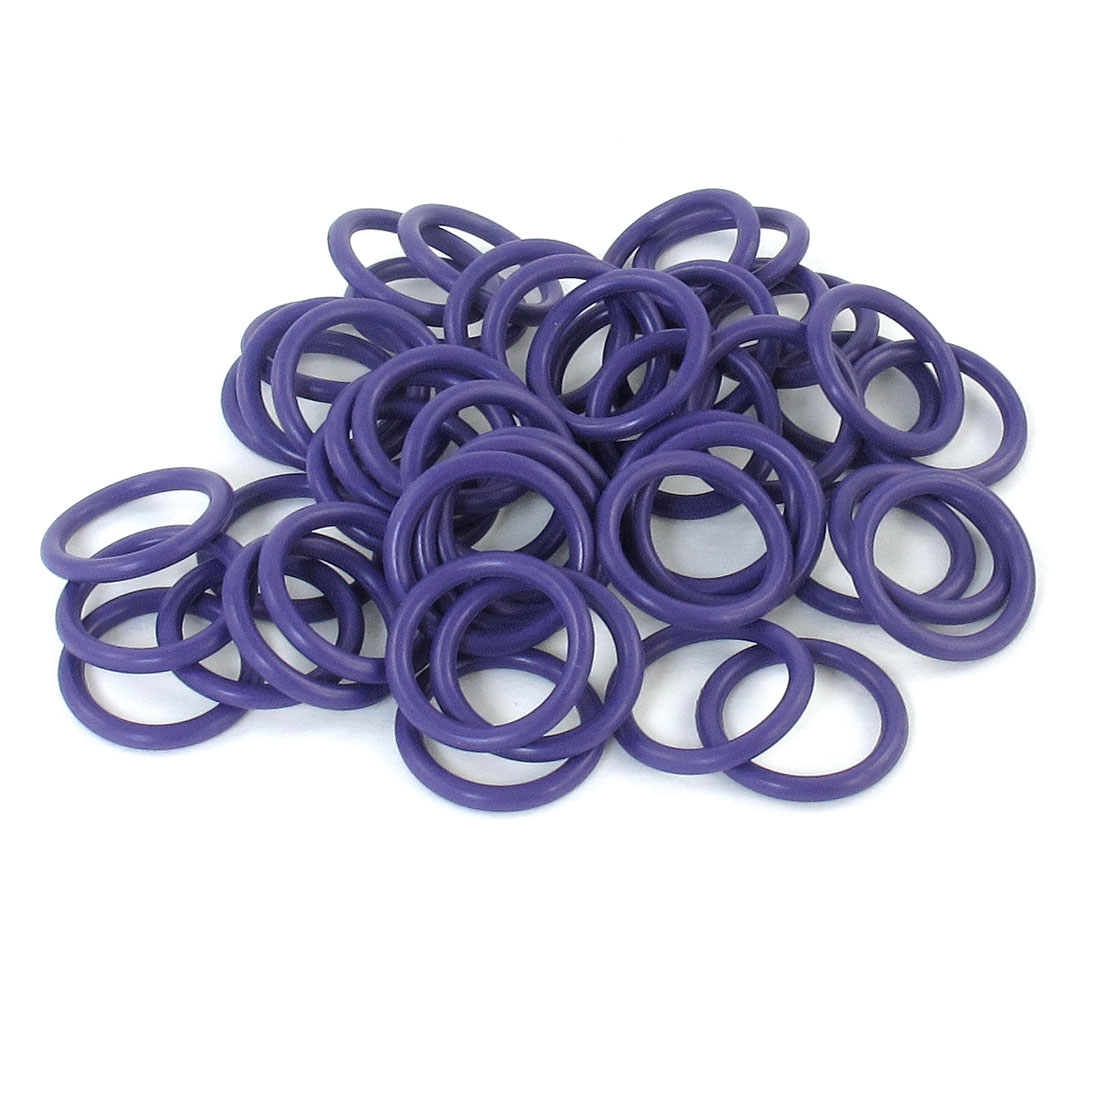 100pcs HNBR Car Truck Van Air Con A/C Purple Seal O Ring 14.3 x 11.5 x 1.7mm